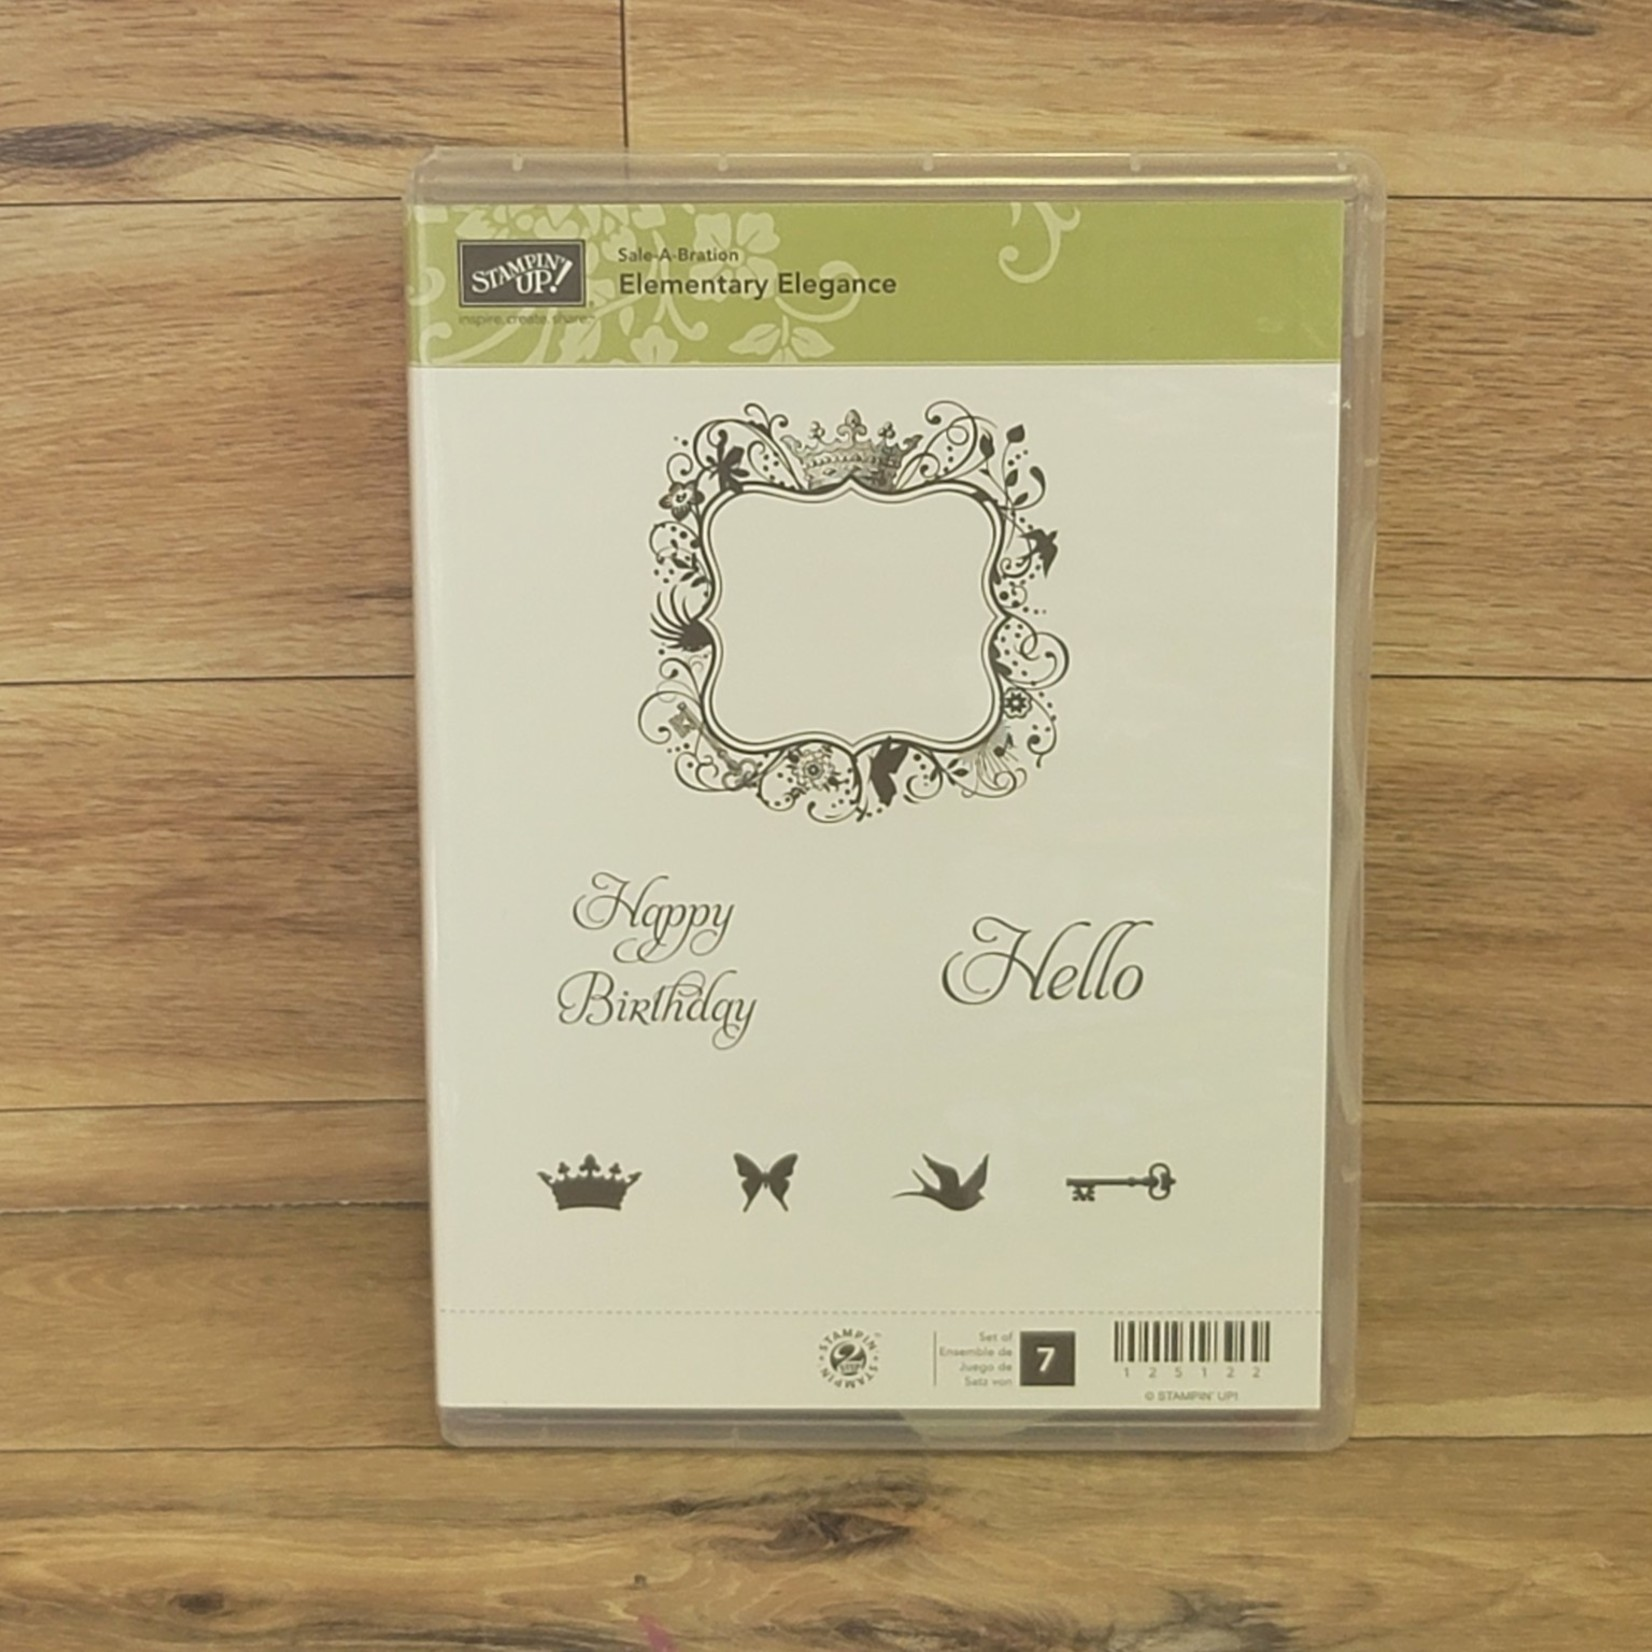 Stampin' Up Stampin Up - Rubber cling stamps - Elementary Elegance